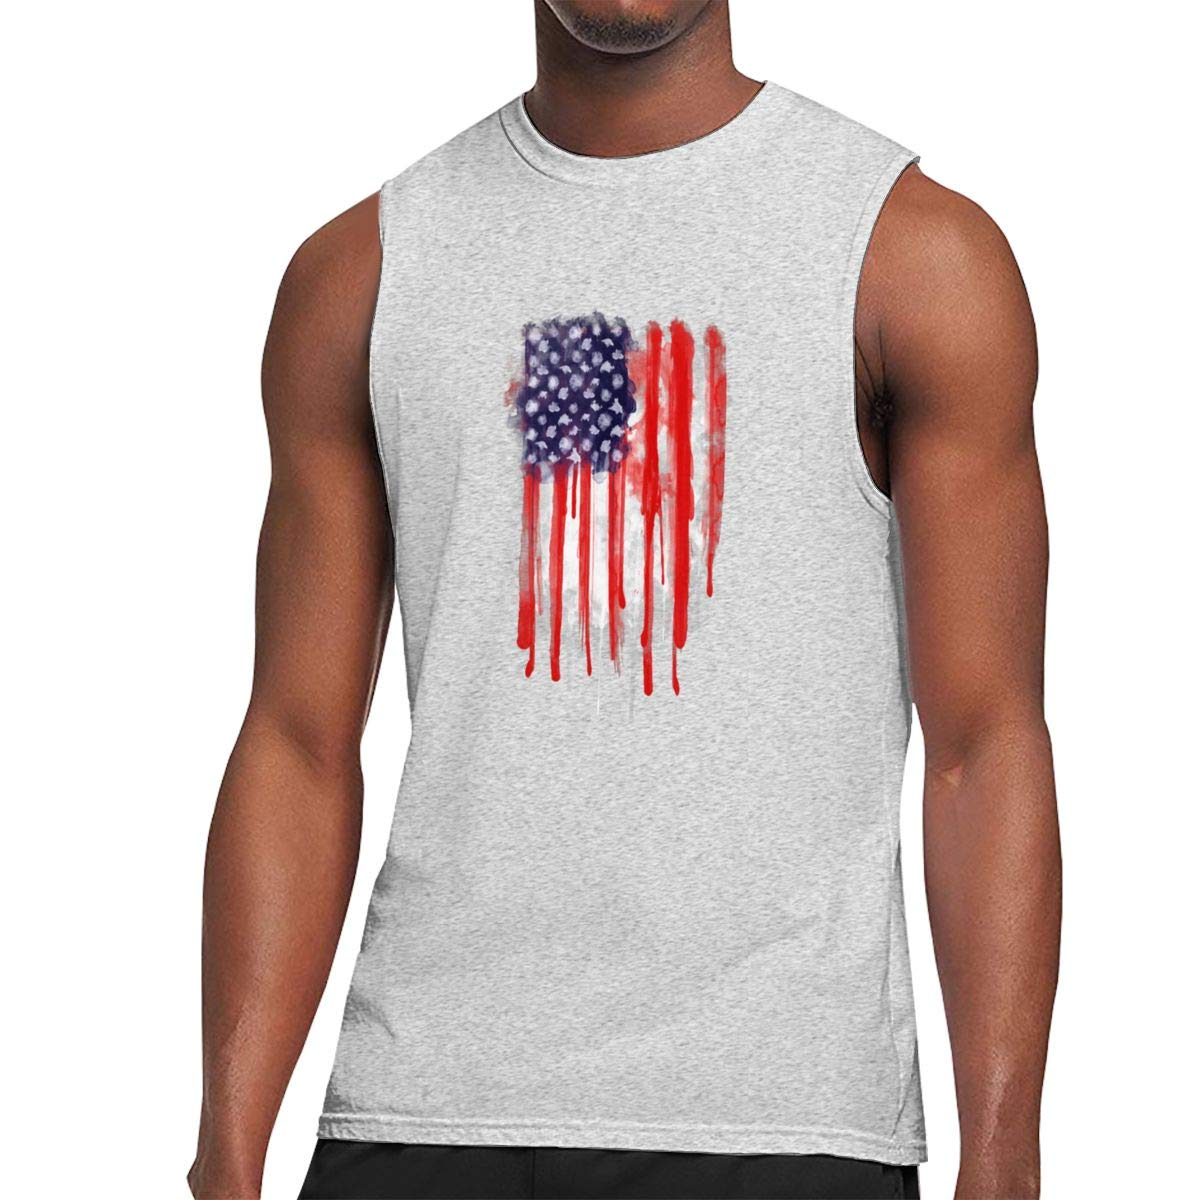 American Spatter Flag Sleeveless Tanks Top Shirts Fit Mens